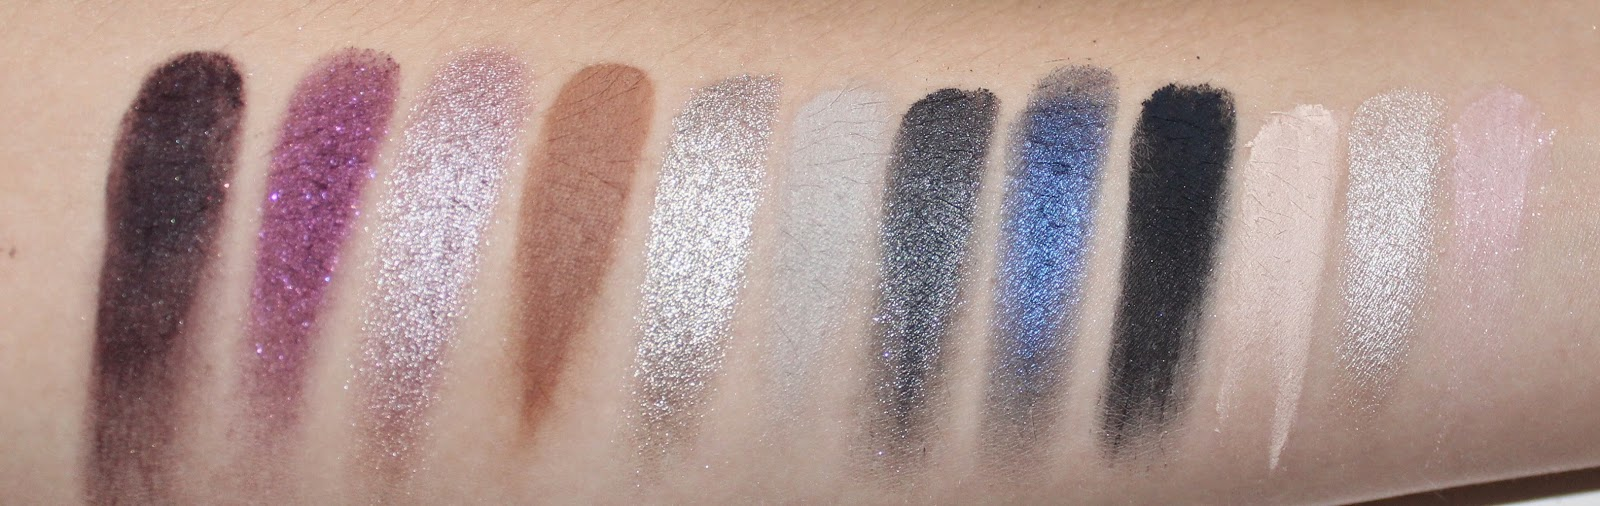 Kat Von D Chrysalis Eyeshadow Palette Swatches